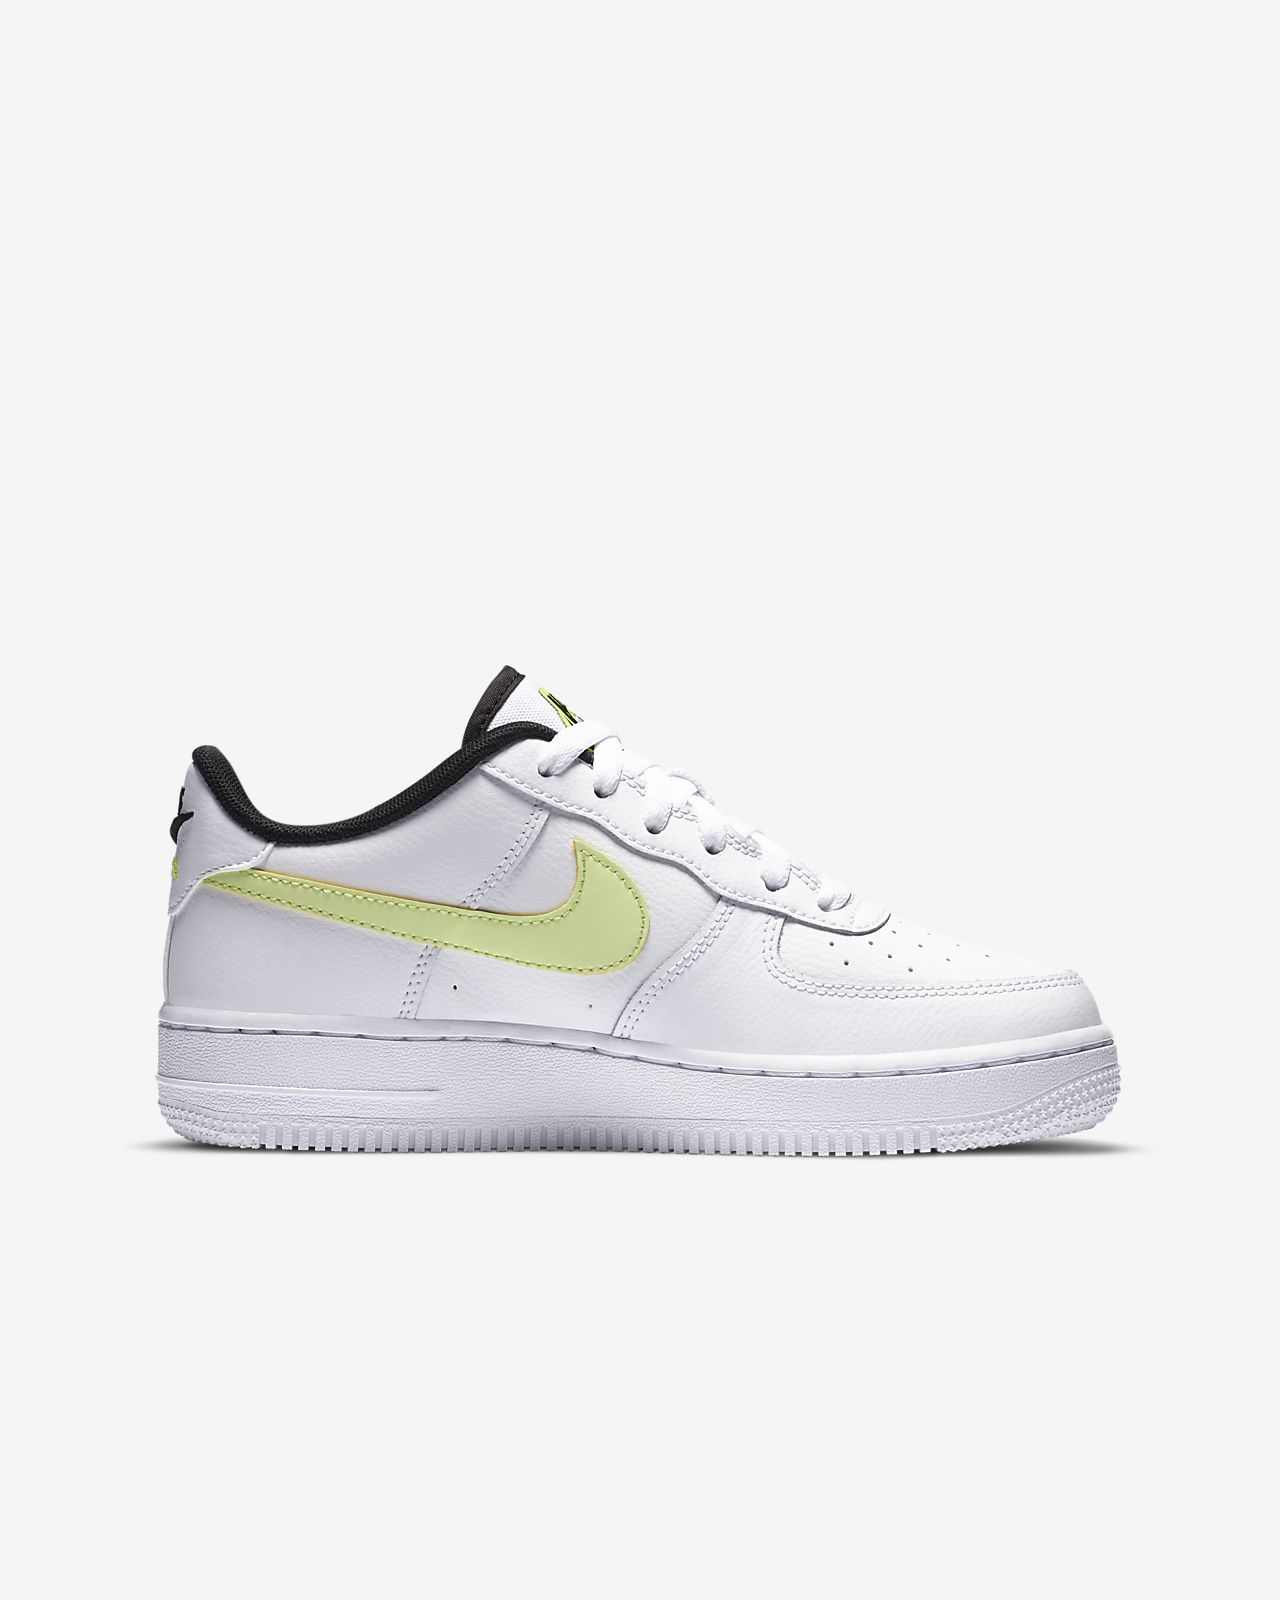 Sapatilhas Nike Air Force 1 LV8 1 Júnior